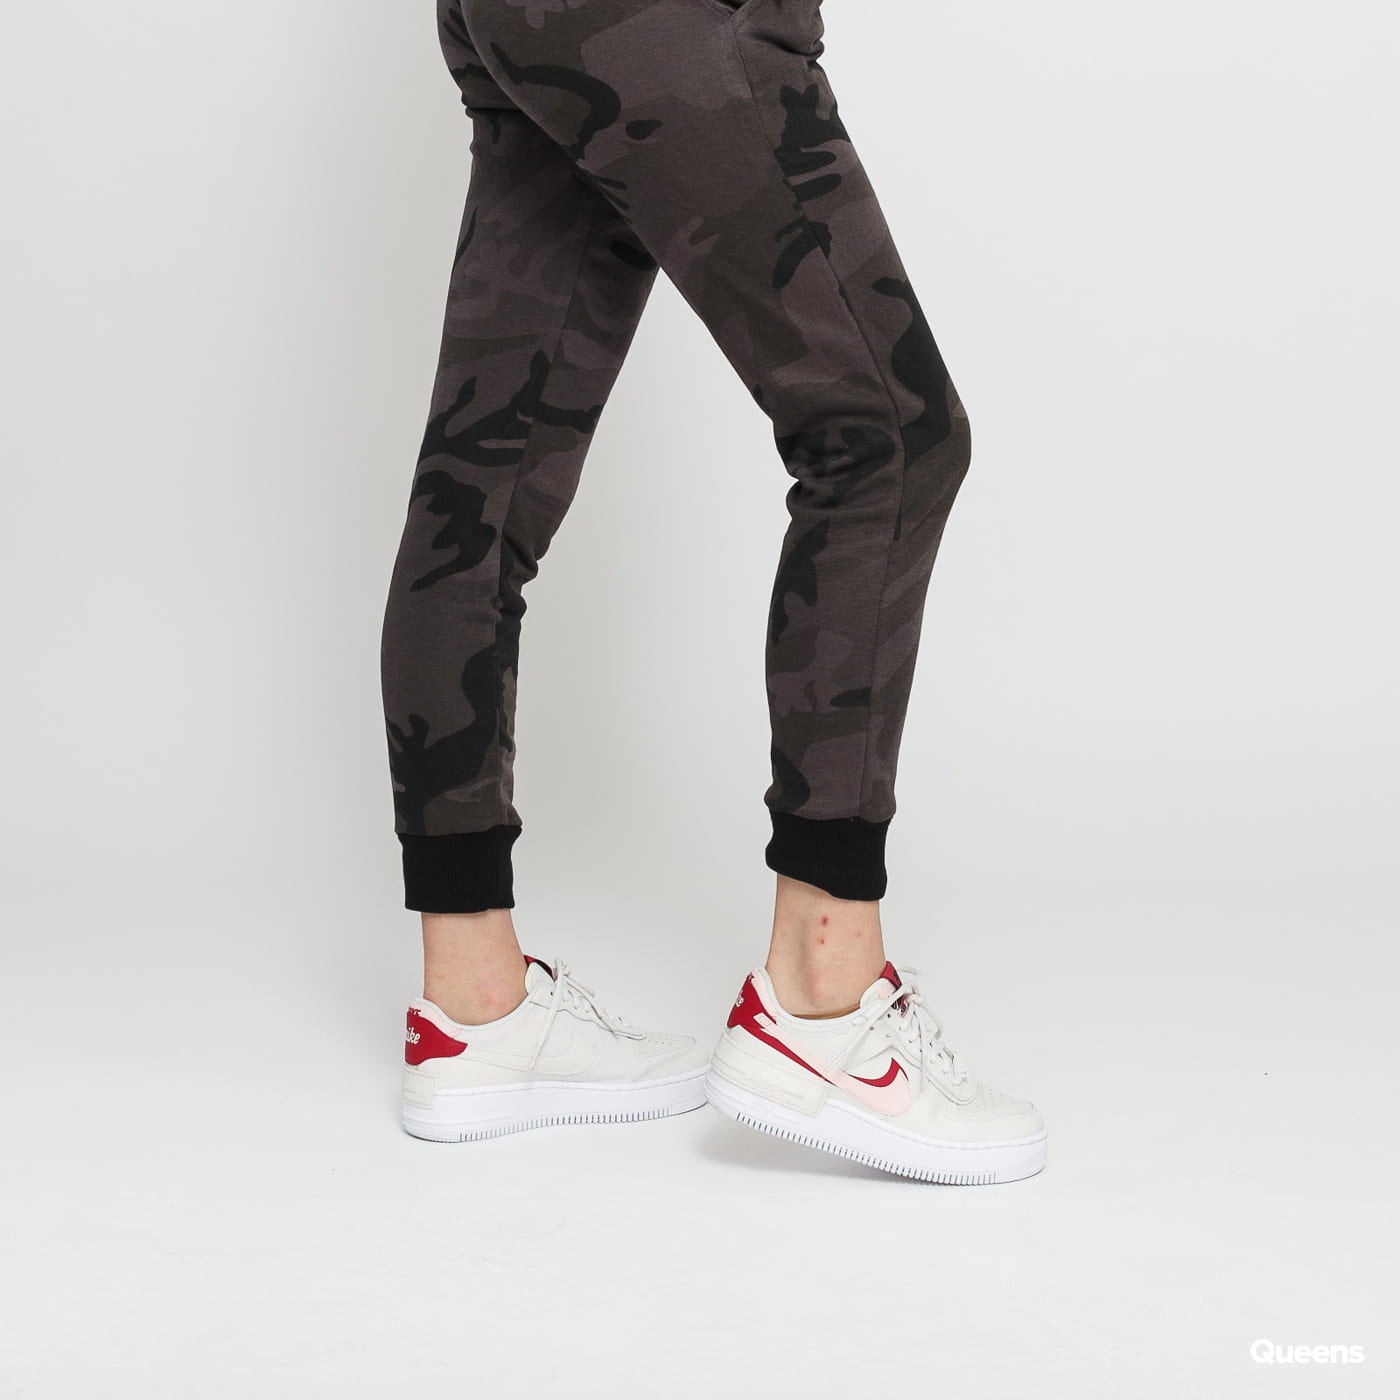 Urban Classics Ladies Camo Terry Pants dunkelgrau camo